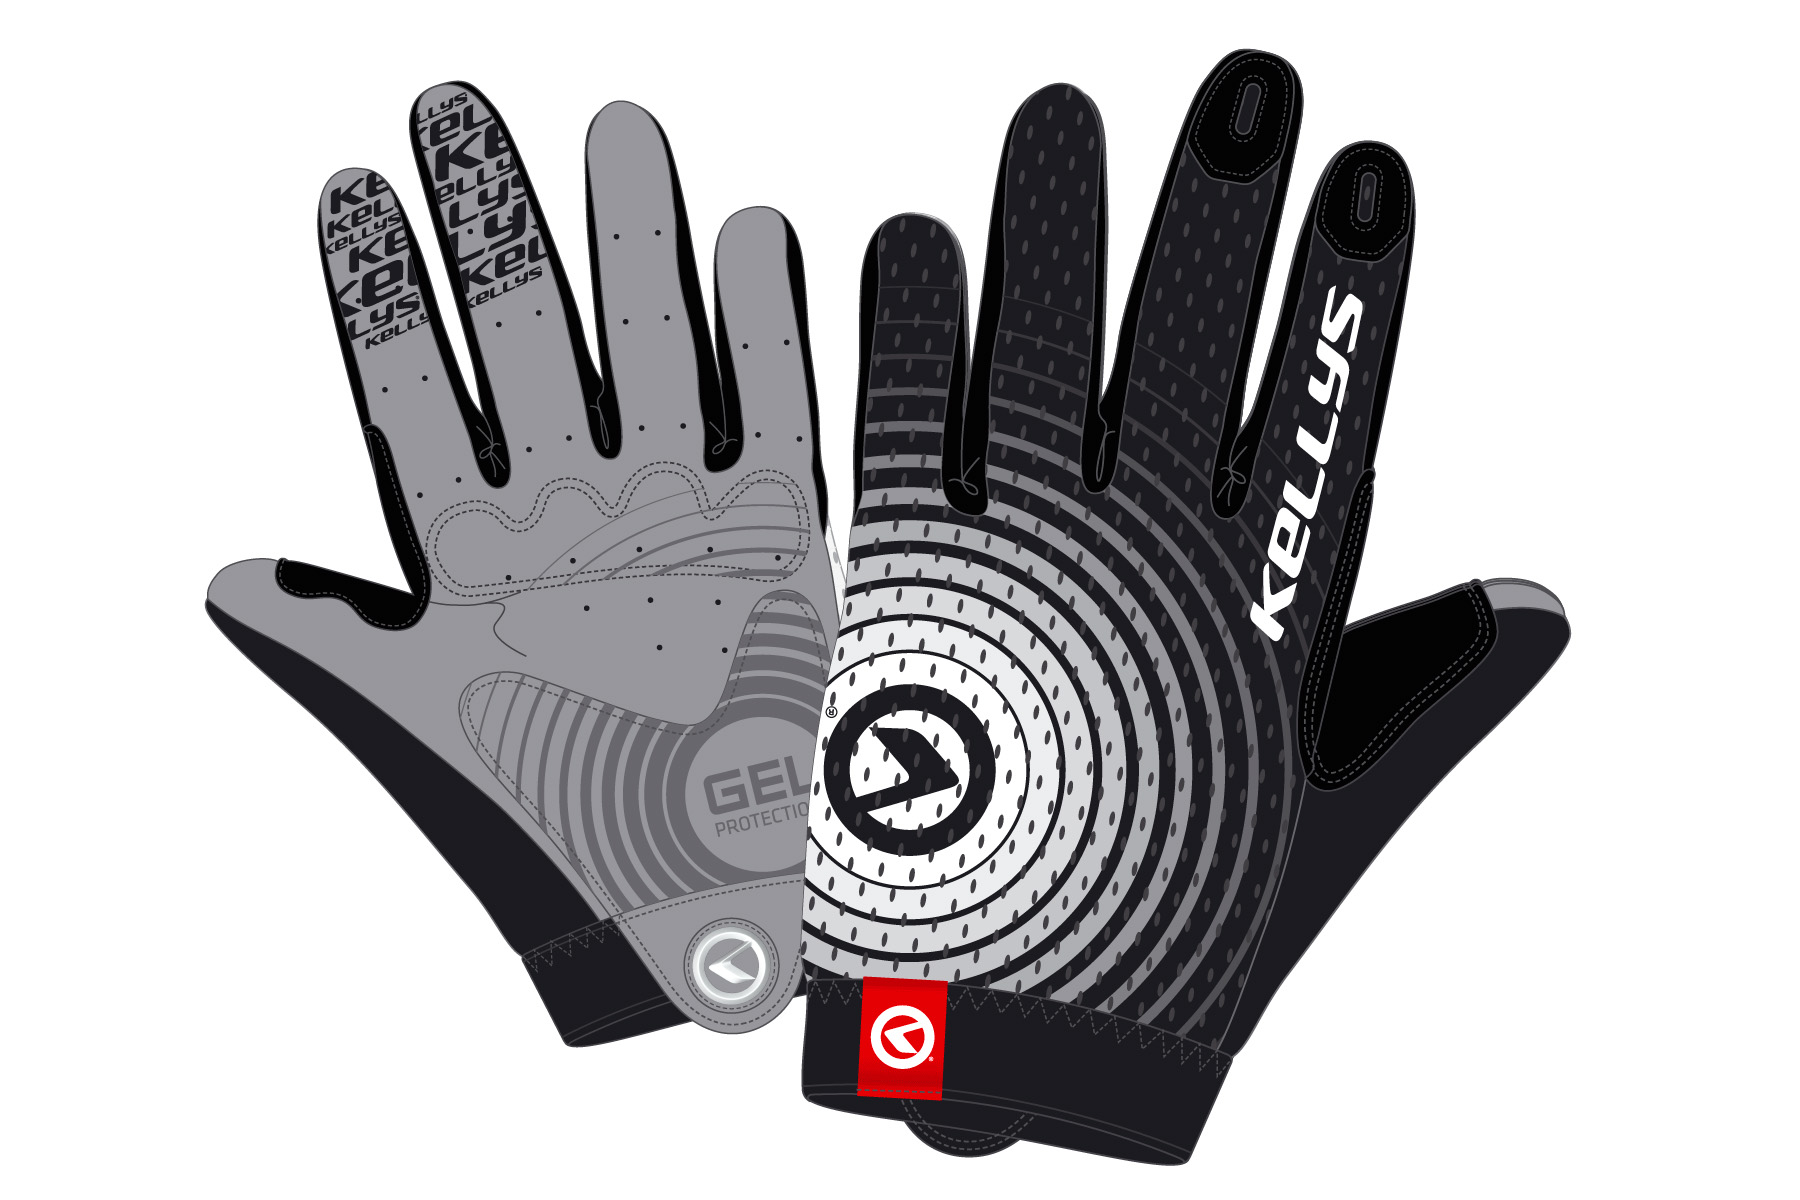 Handschuhe INSTINCT long black-white L - Handschuhe INSTINCT long black-white L